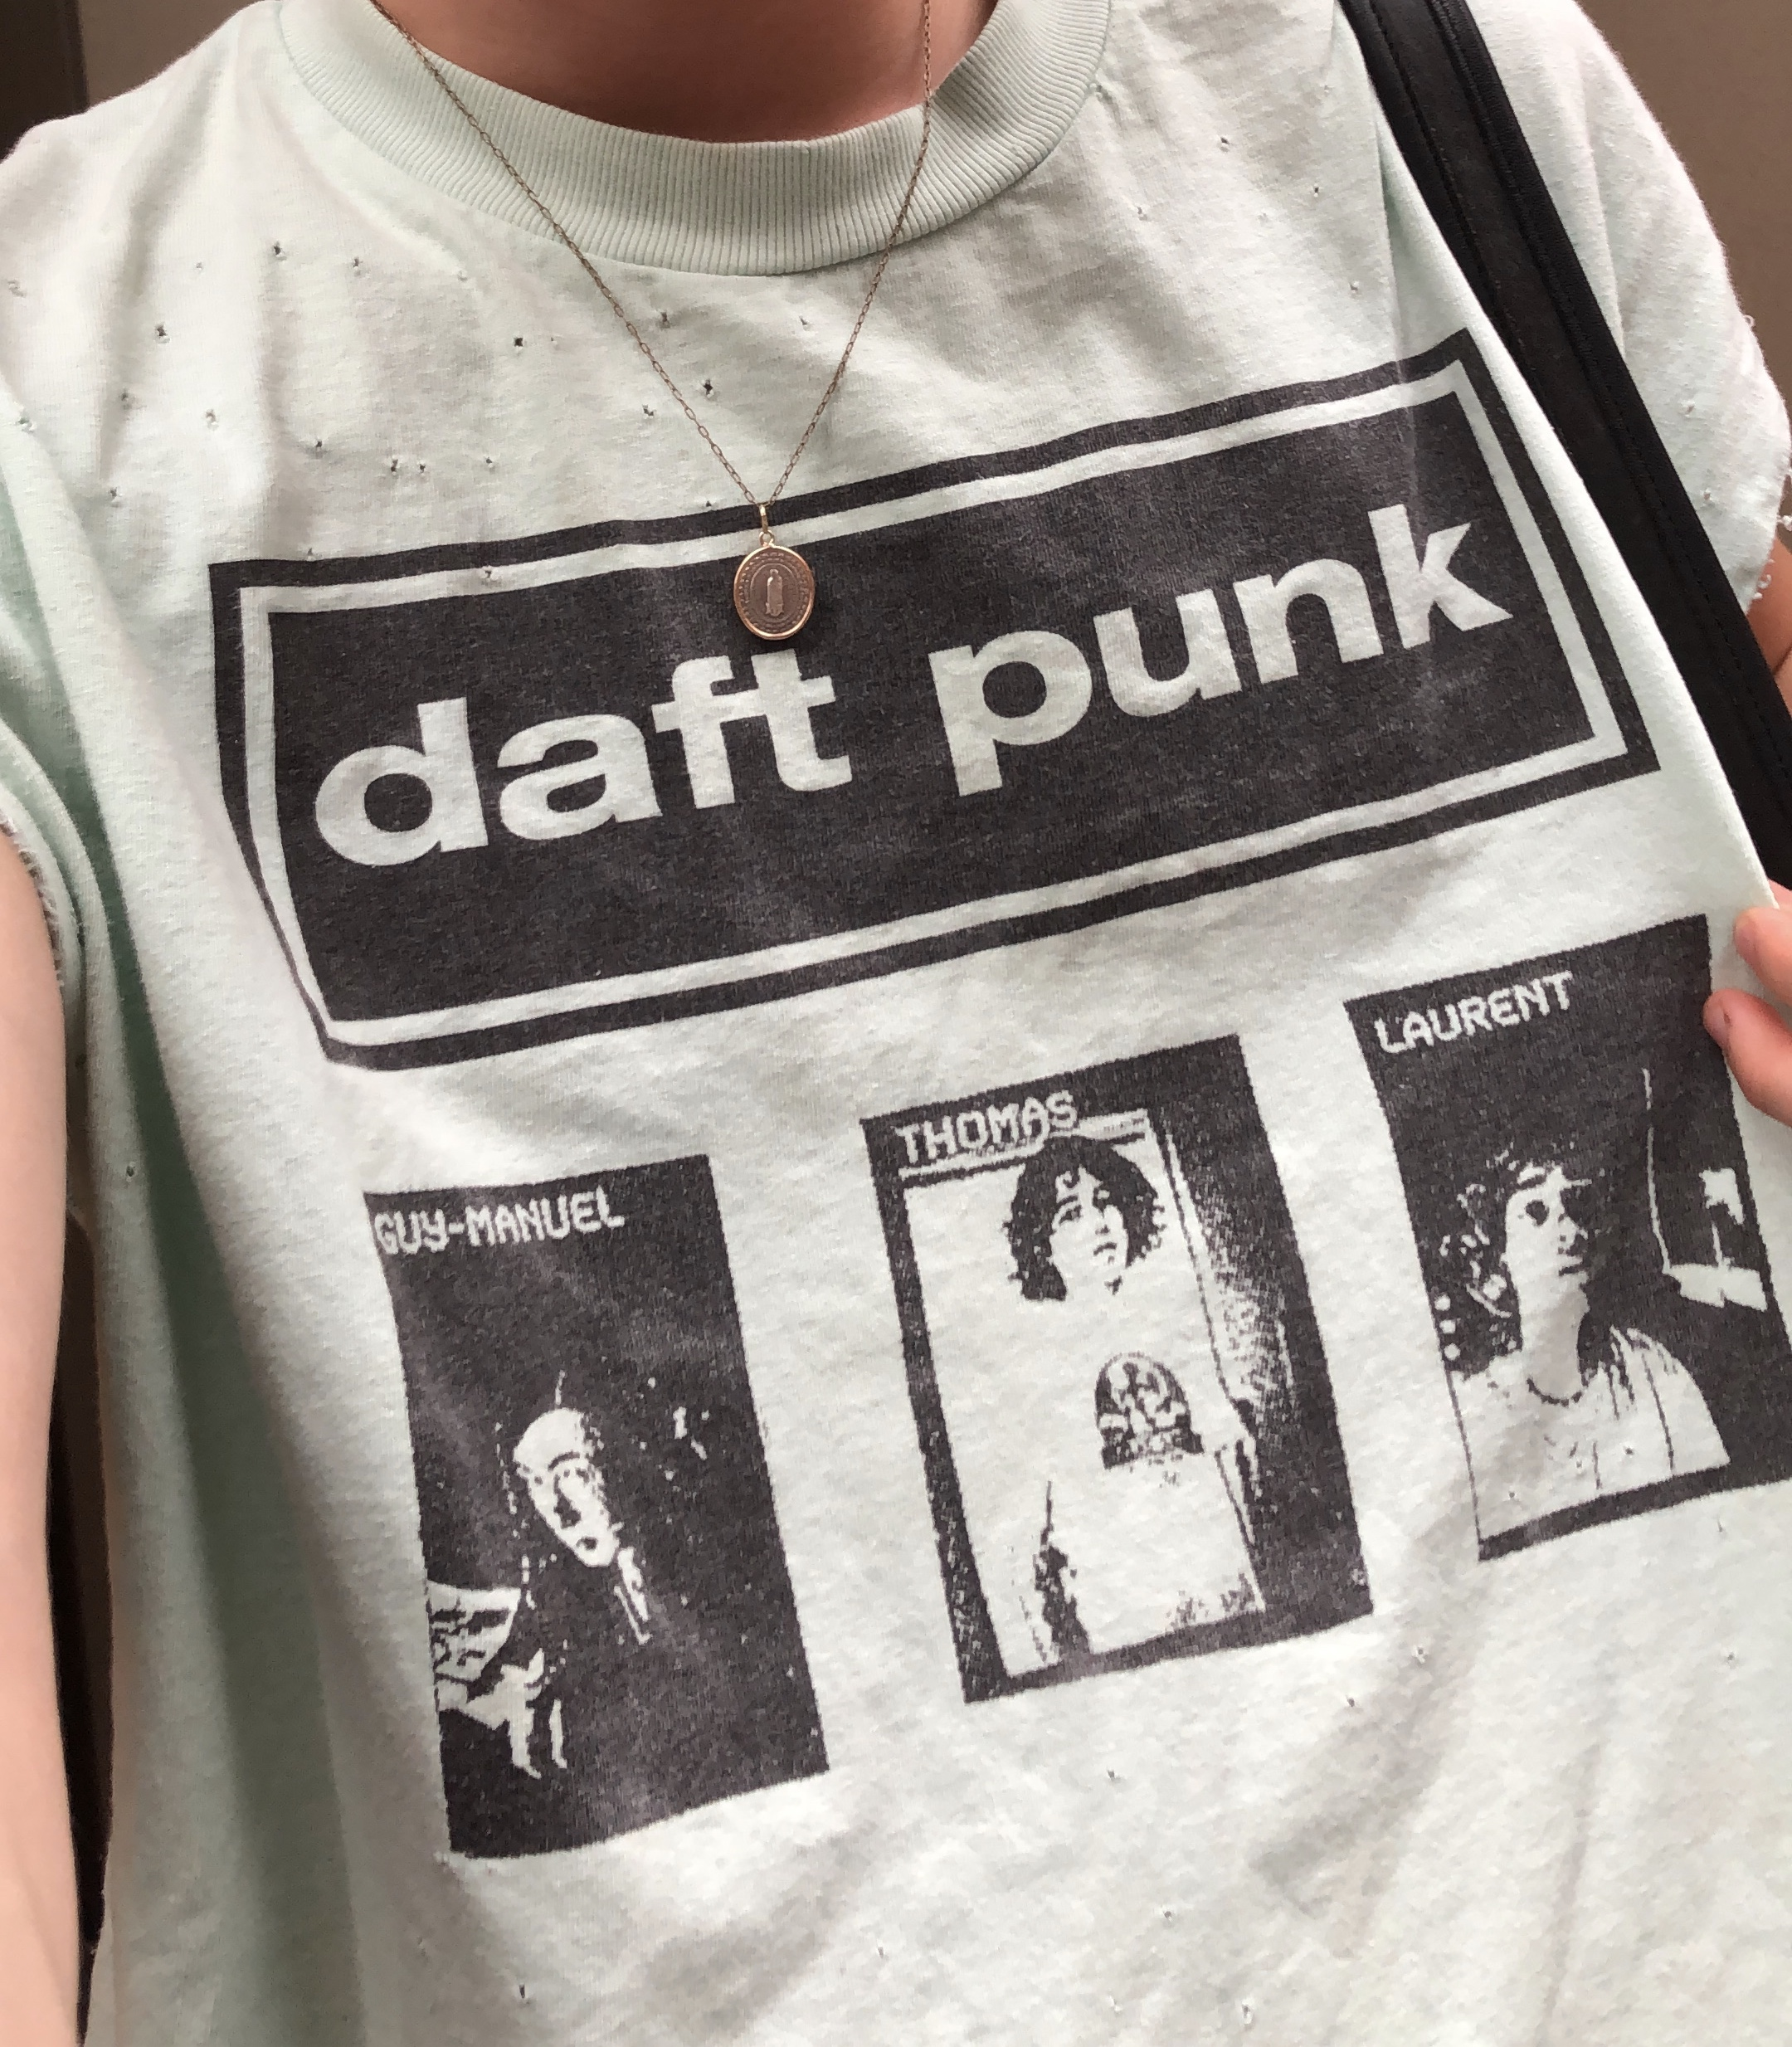 The next day, I literally saw a guy wearing this shirt in the subway. So for those of you who don't know me, I am a MASSIVE Daft Punk fan, and when I saw this shirt, I had to have it. I asked him how much it would cost to buy it off his back, he named his price, and the rest is history. I bought a shirt off a stranger in the subway, it was a beautiful and slightly unhygienic moment. He looked like a clean guy though, but yeah I washed it as soon as I got home.